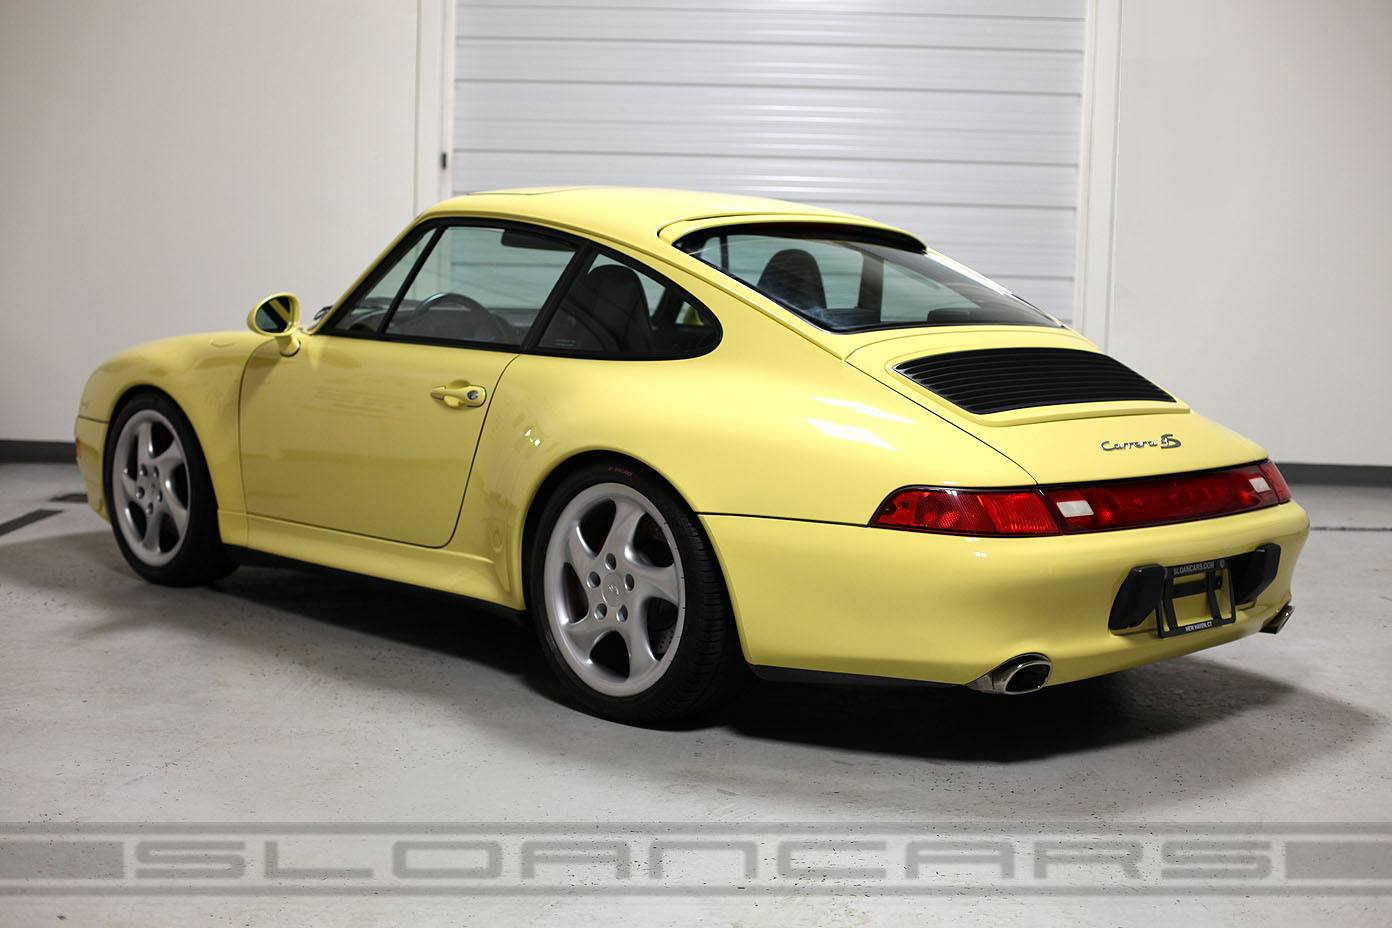 Porsche 993 Owners Manual Pdf Twin Turbo Ocean Blue 24 668 Miles 996 Seat Wiring Diagram 1997 Carrera 4s Pastel Yellow 34 000